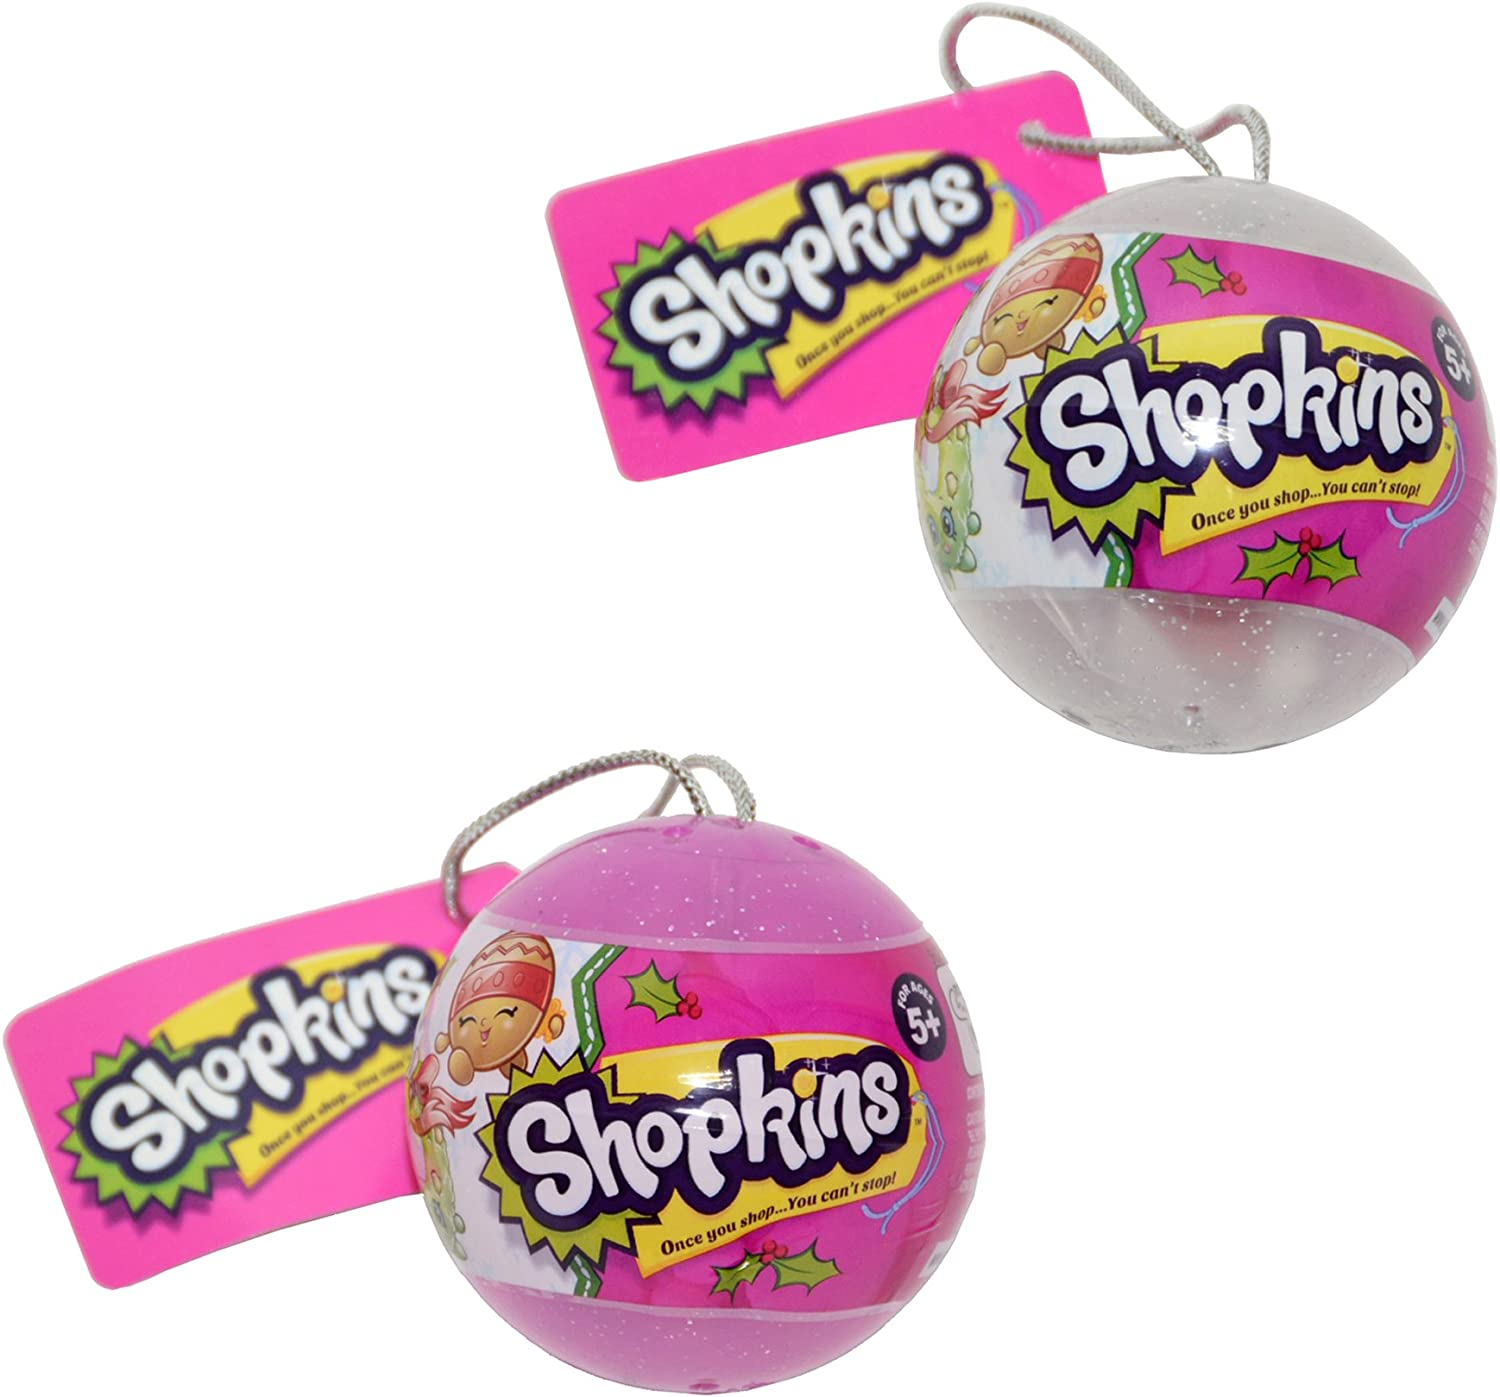 Shopkins 2016 Christmas Figures from Ornaments Complete Set of 12